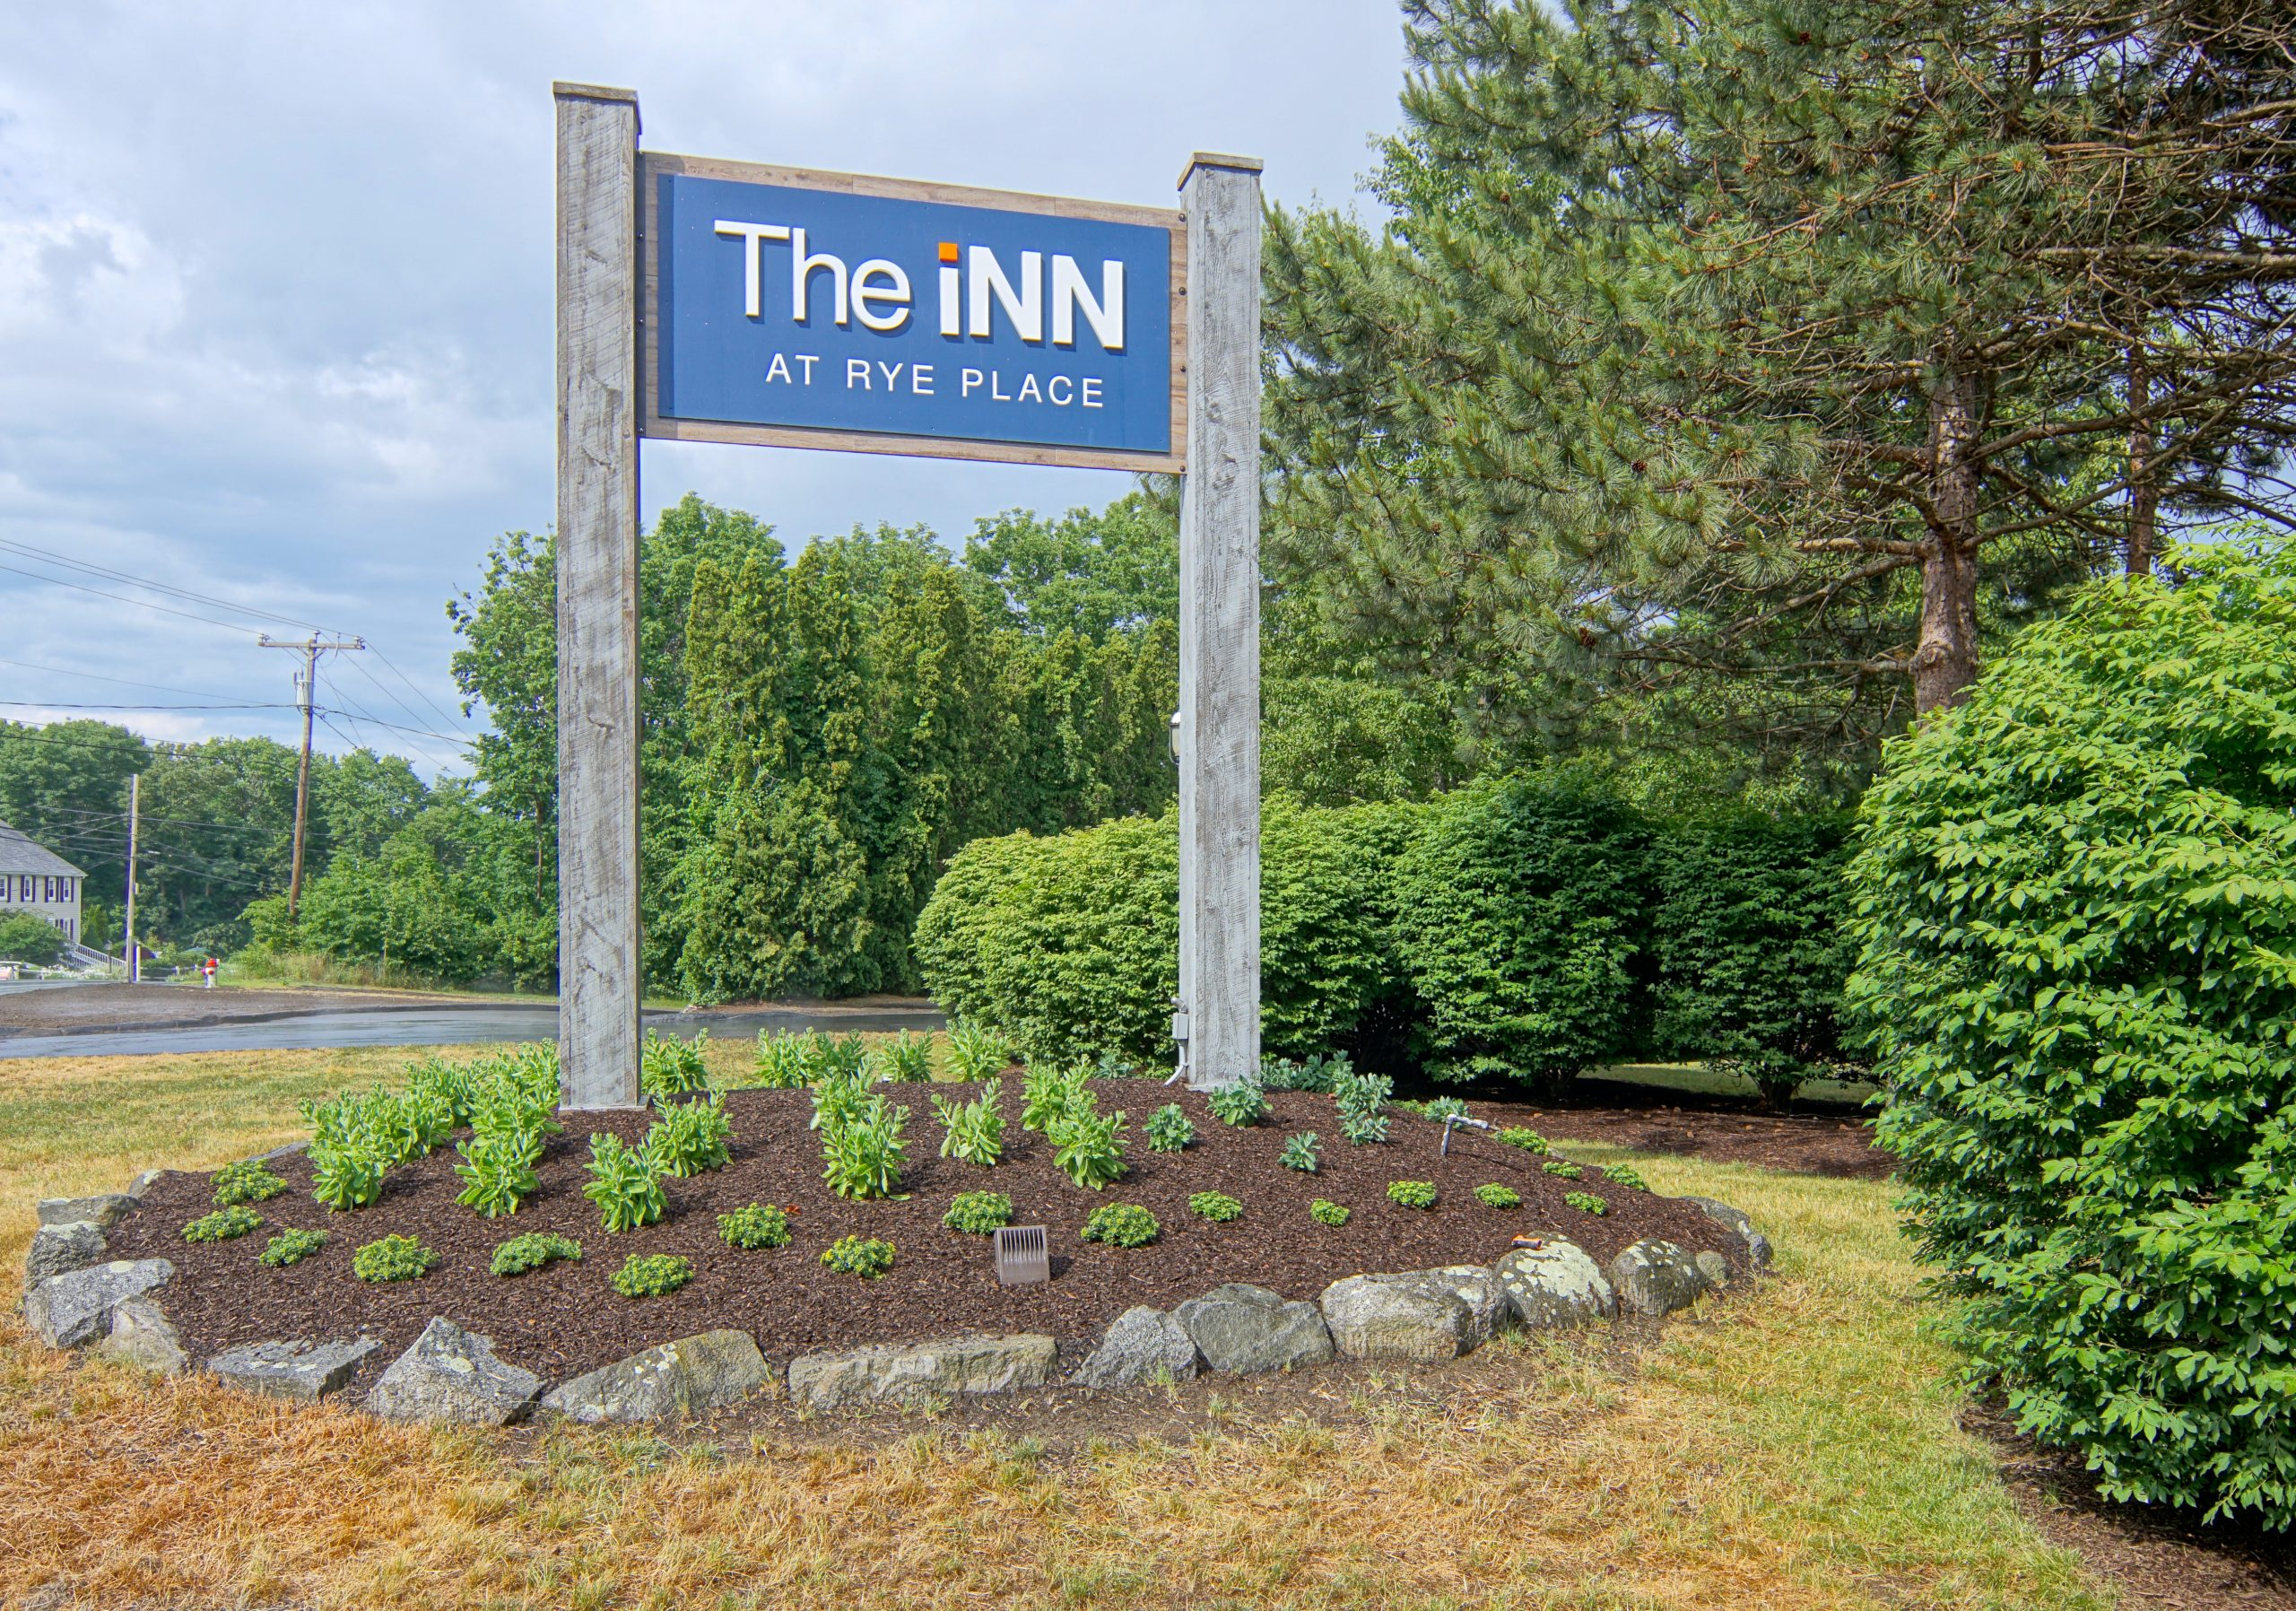 The Inn at Rye Place New Hampshire31